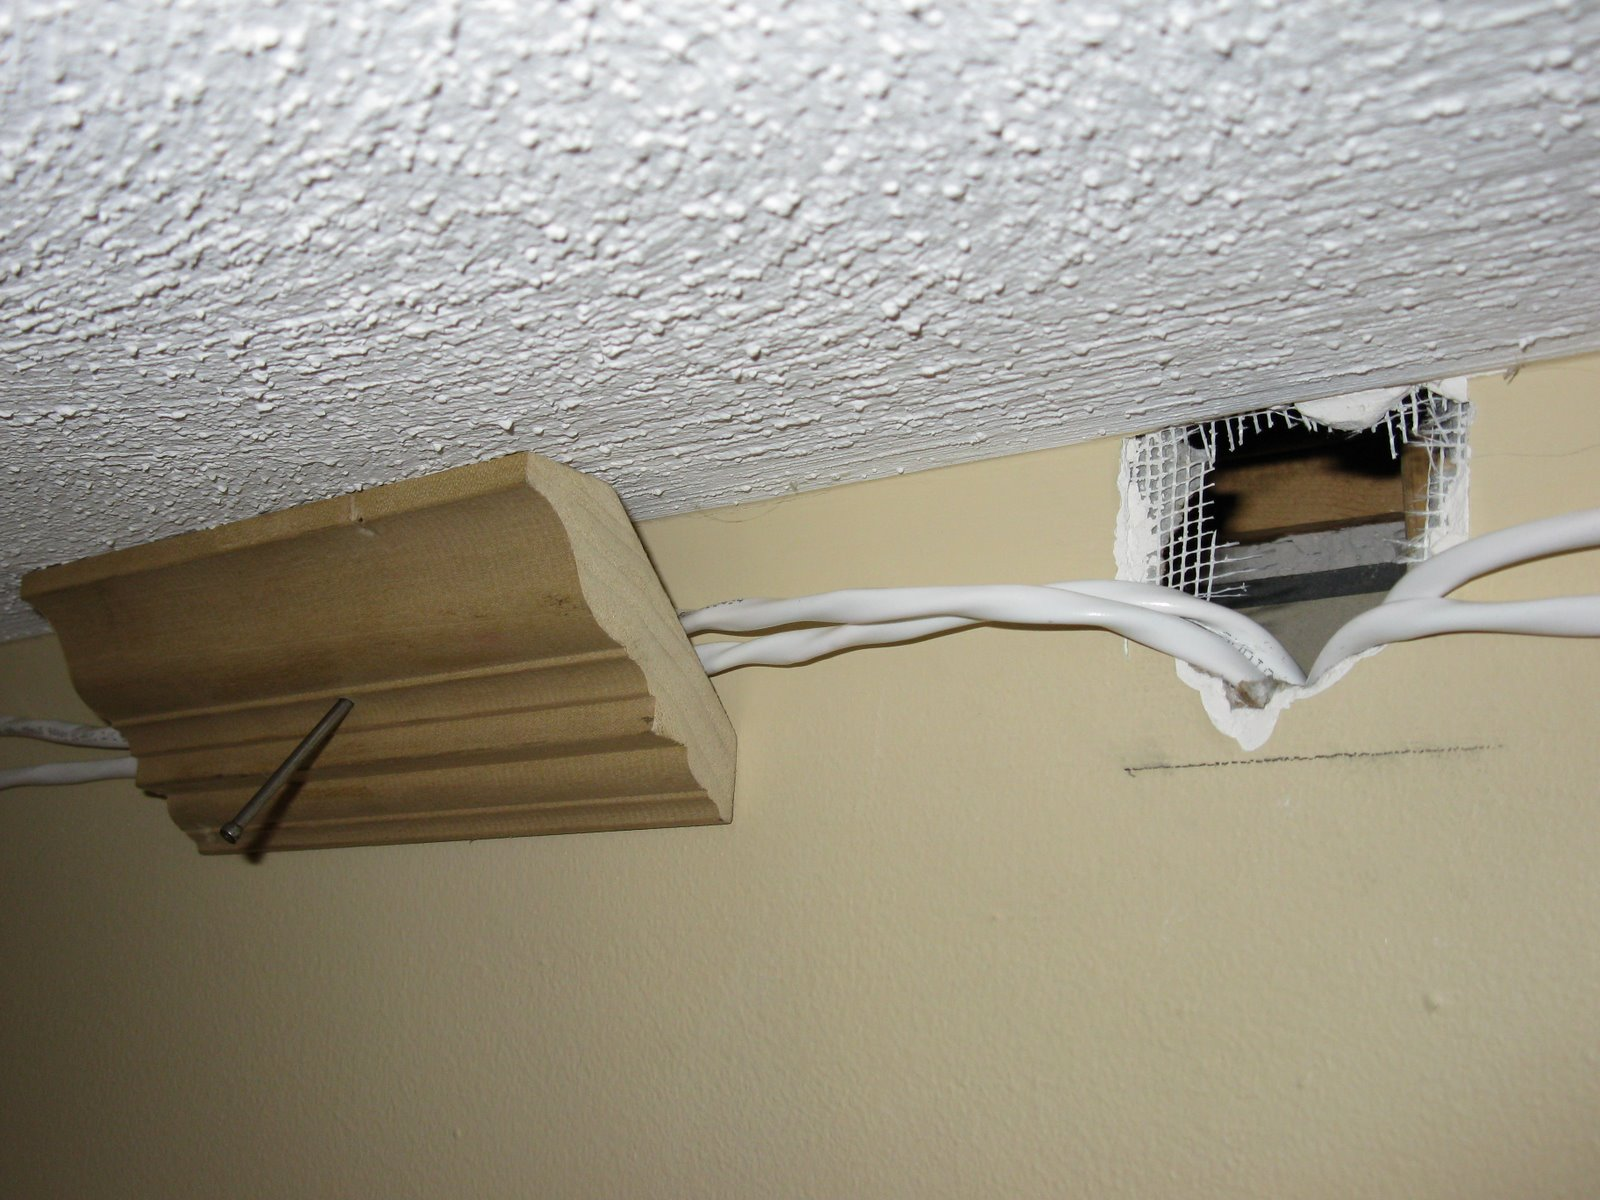 How To Install Speaker Wire Behind Crown Molding A Concord Carpenter Wiring Wall Plate This